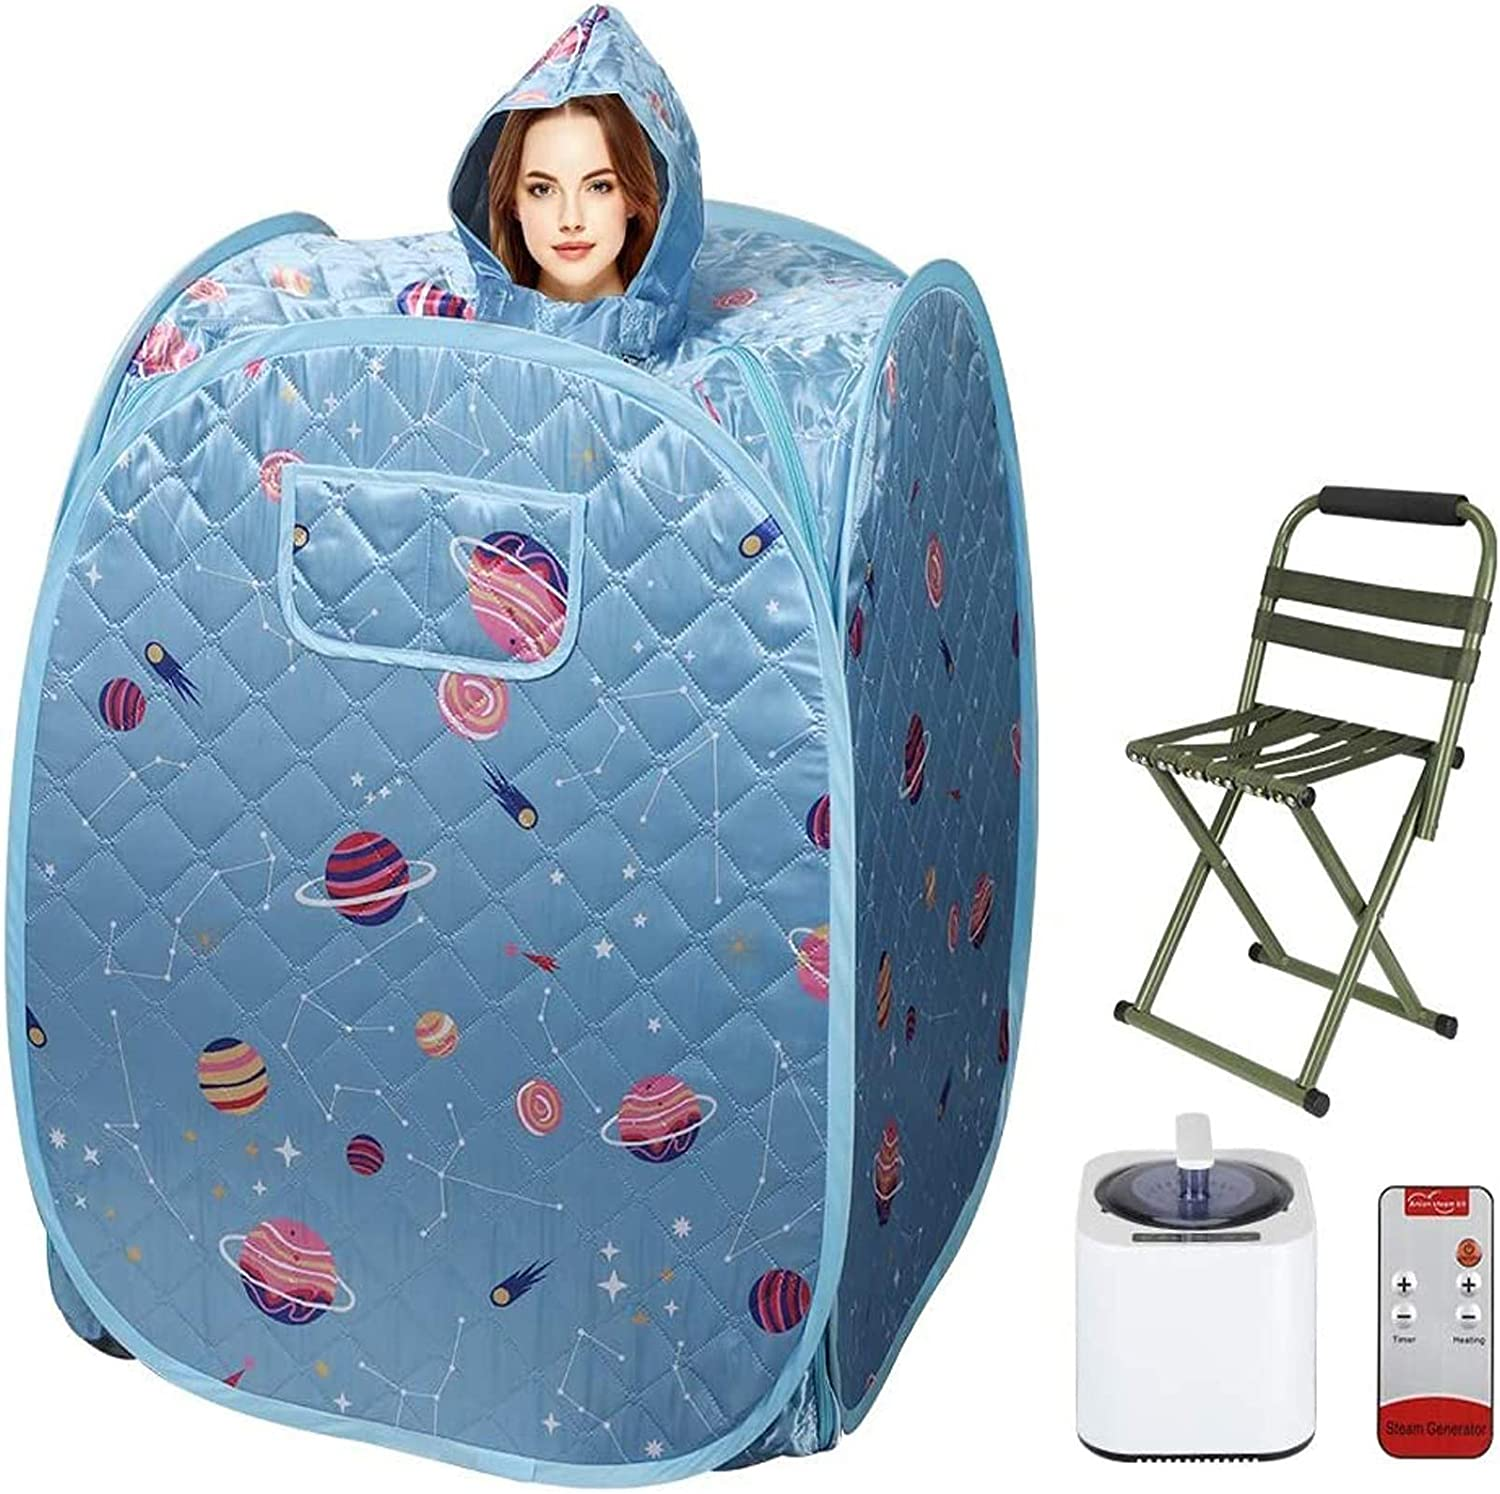 Home Portable Steam Sauna Spa, Single Sauna Tent for Weight Loss Detox Relaxation, Personal Therapeutic Sauna with Remote Control/Foldable Chair/Fumigation Machine